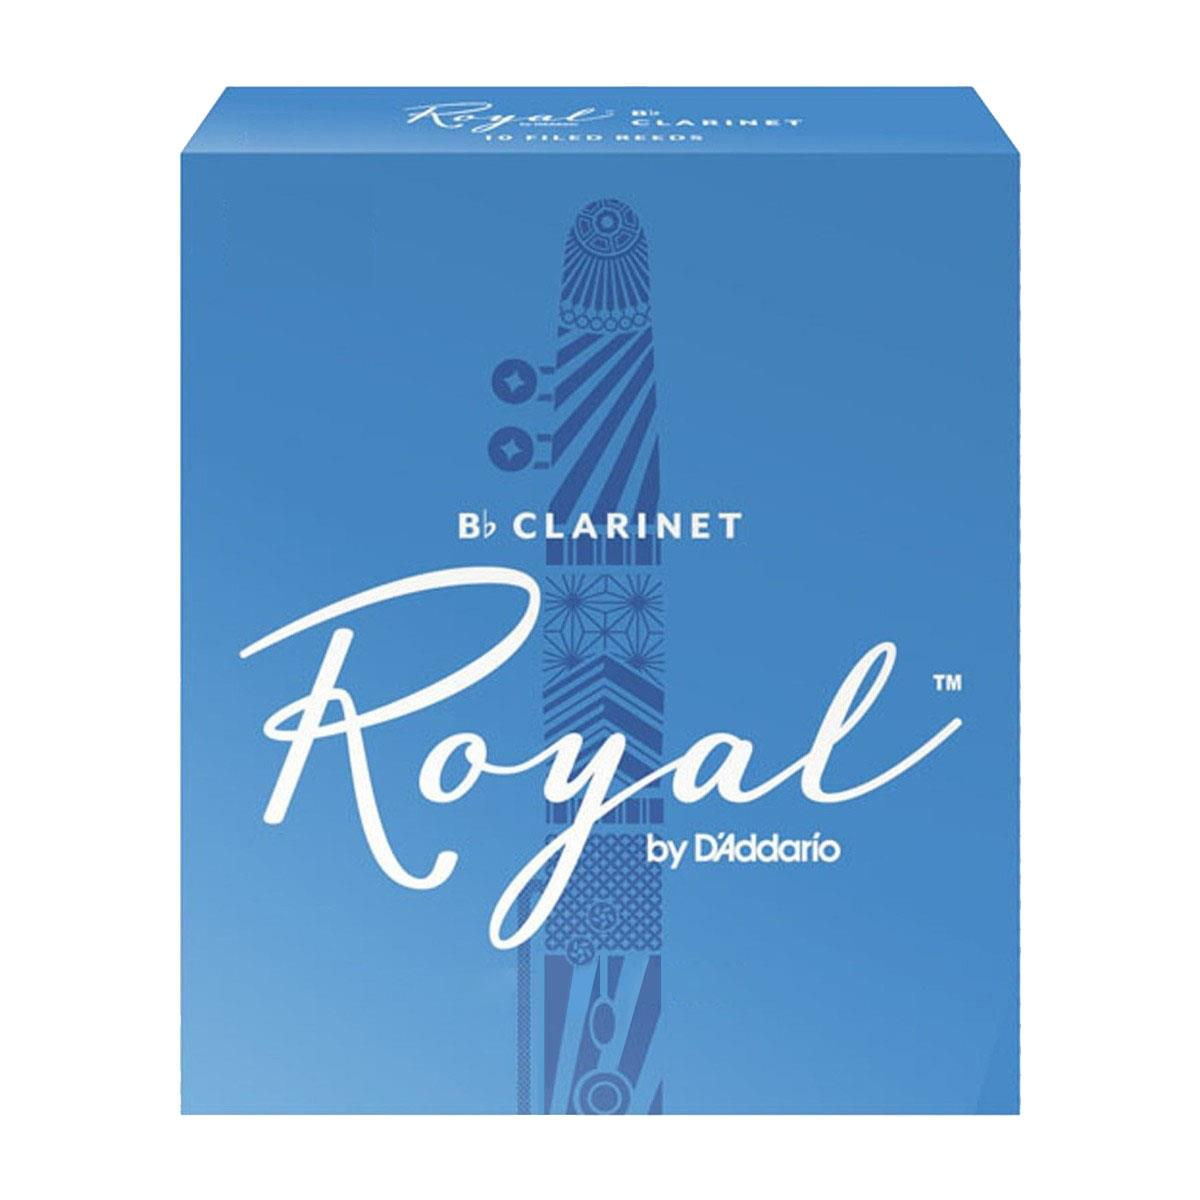 Image of D'Addario Woodwind Royal RCB1025 Bb Clarinet Reeds Strength 2.5 10-pack 0046716533241